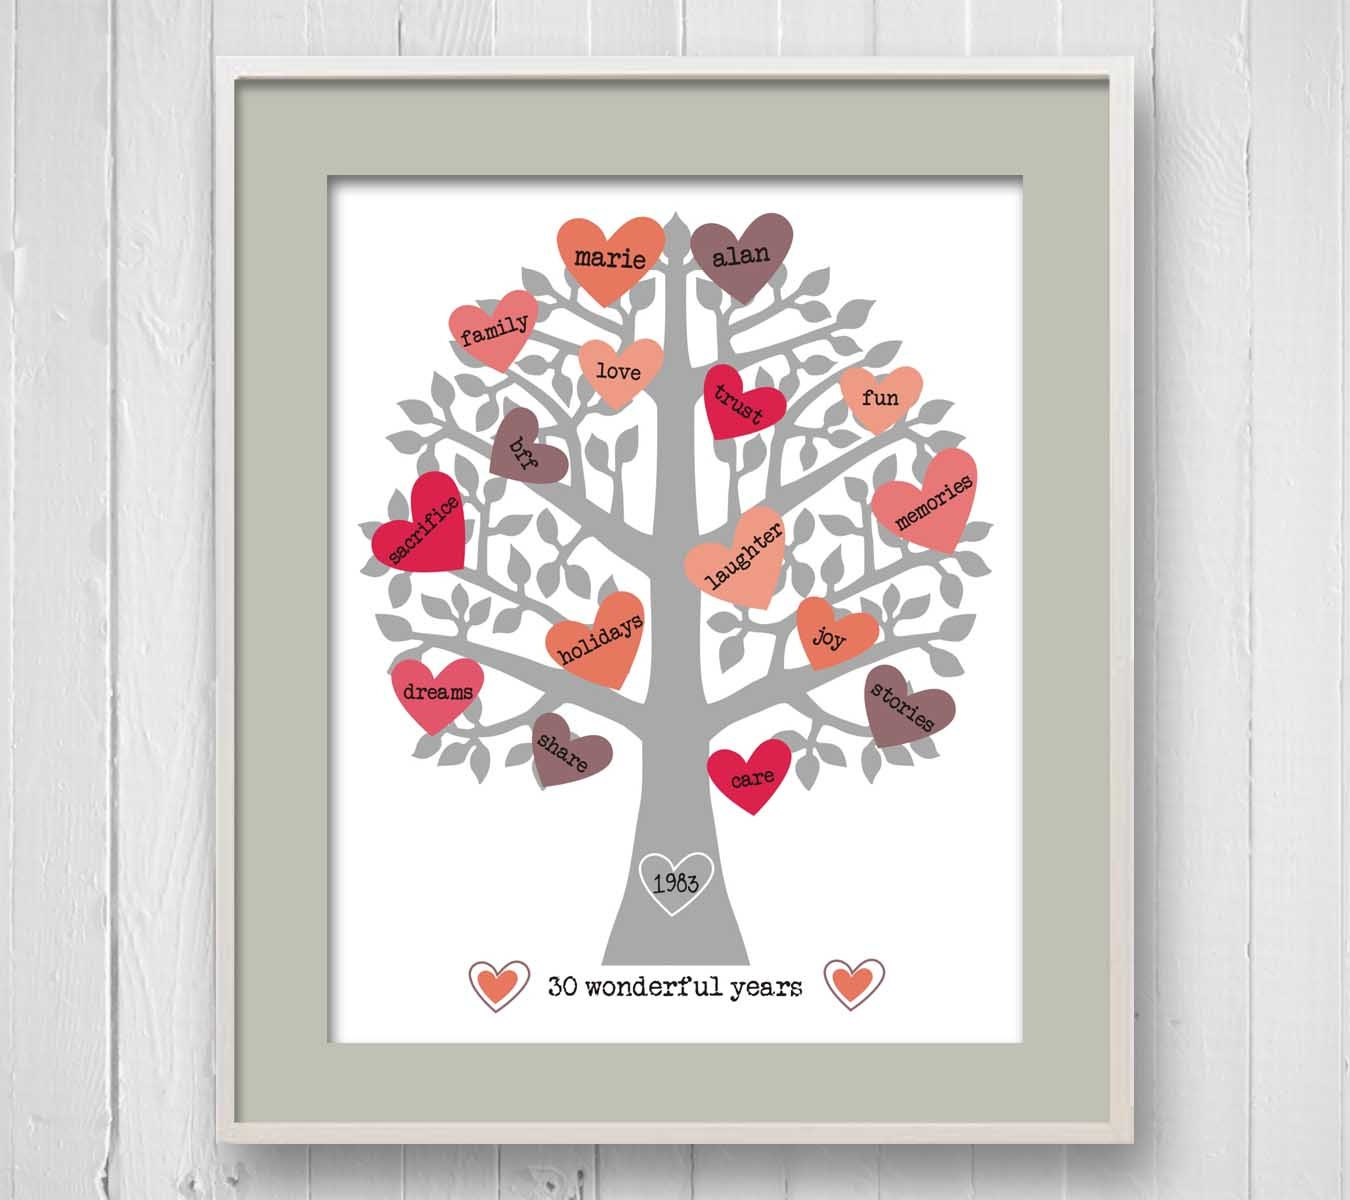 Wedding anniversary gifts gifts for parents on wedding for Present for 50th wedding anniversary